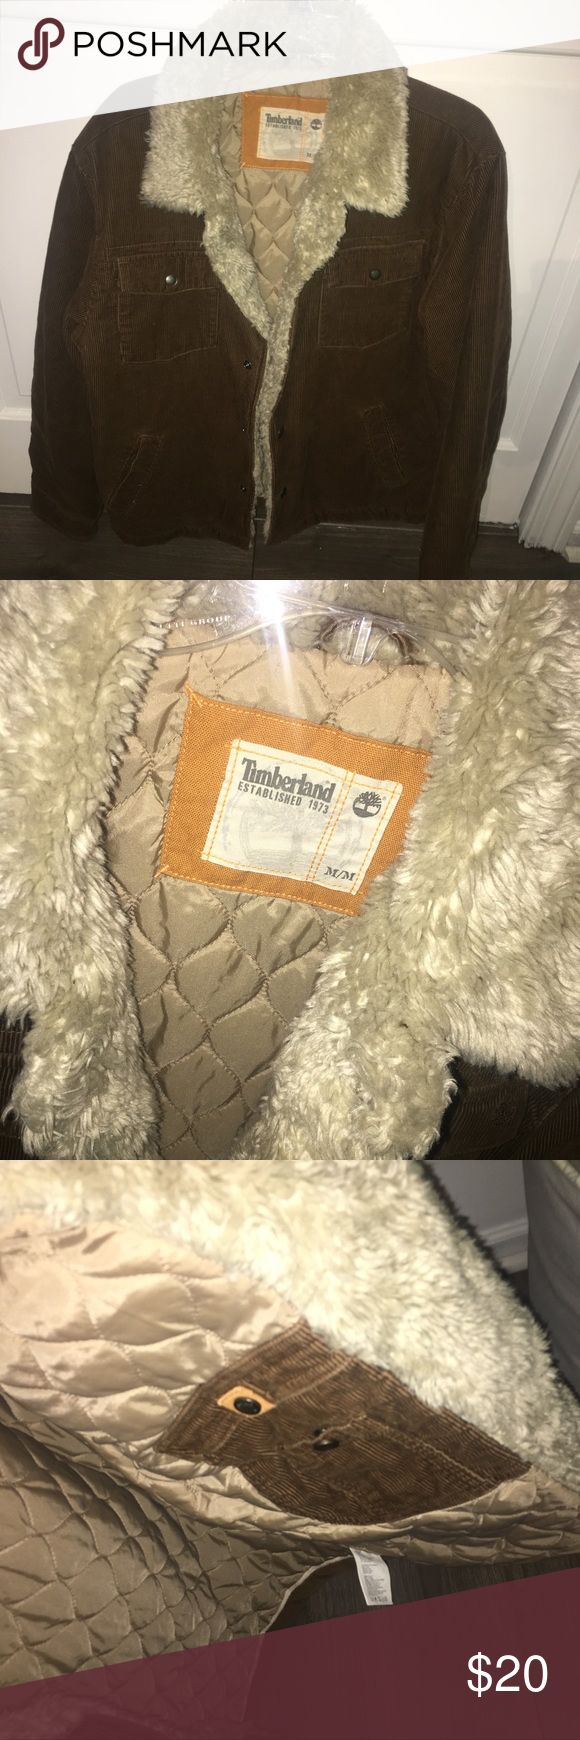 "❗️ FUR TIMBERLAND JACKET ❗️ * men's timberland fur jacket  * exterior is corduroy  * size medium  * in great used condition  ❌ NO TRADES ❌ ✨ AUTHENTIC ✨ 🌀 MAKE OFFERS 🌀  *** If you see more than one item you like, click on the ""add to bundle"" option & give me an offer! I make amazing bundle deals! 💥 #bin1 Timberland Jackets & Coats"